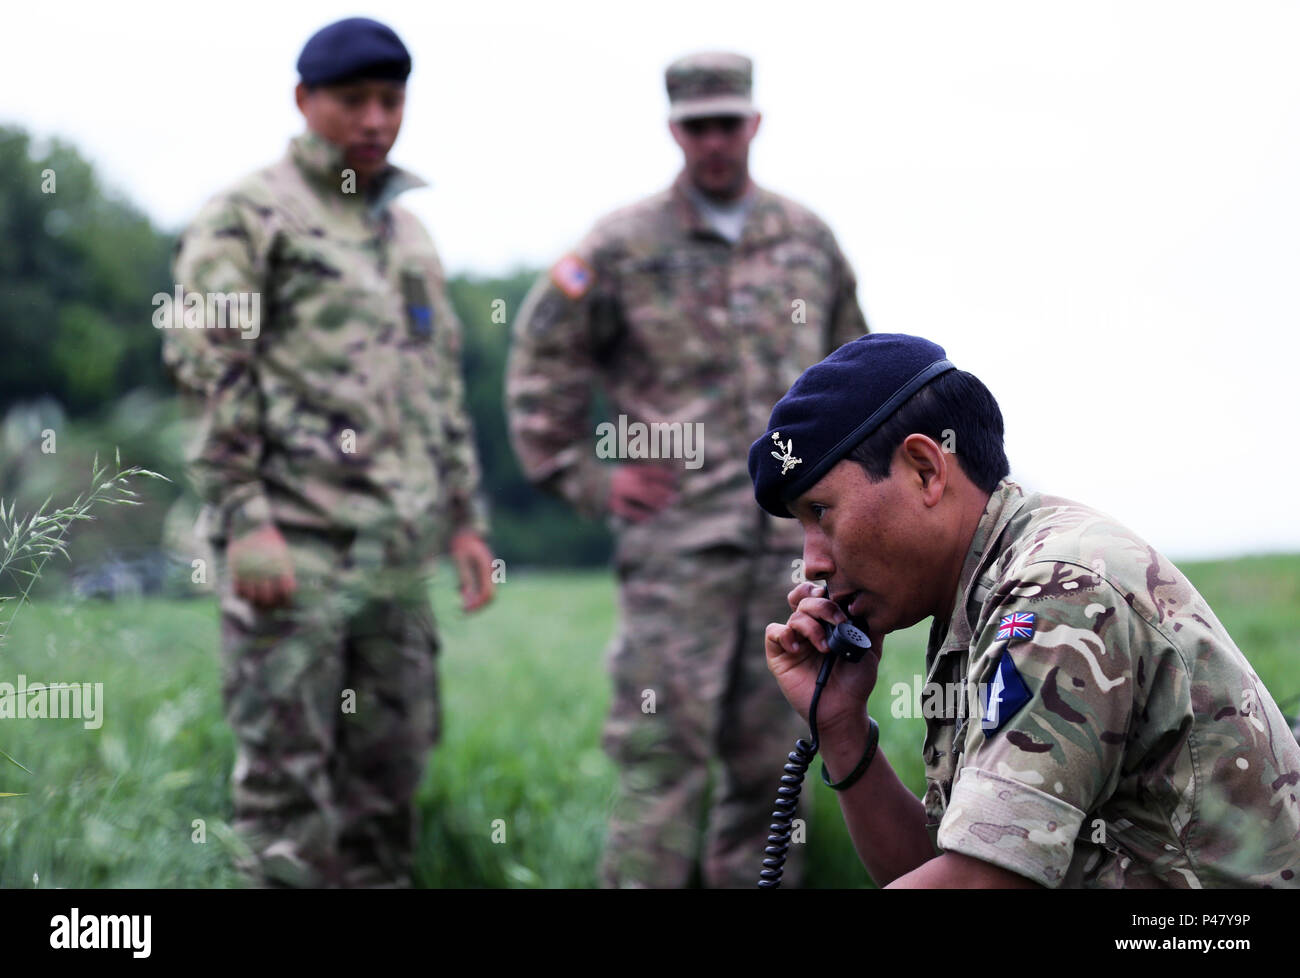 Hf Radio Stock Photos & Hf Radio Stock Images - Alamy